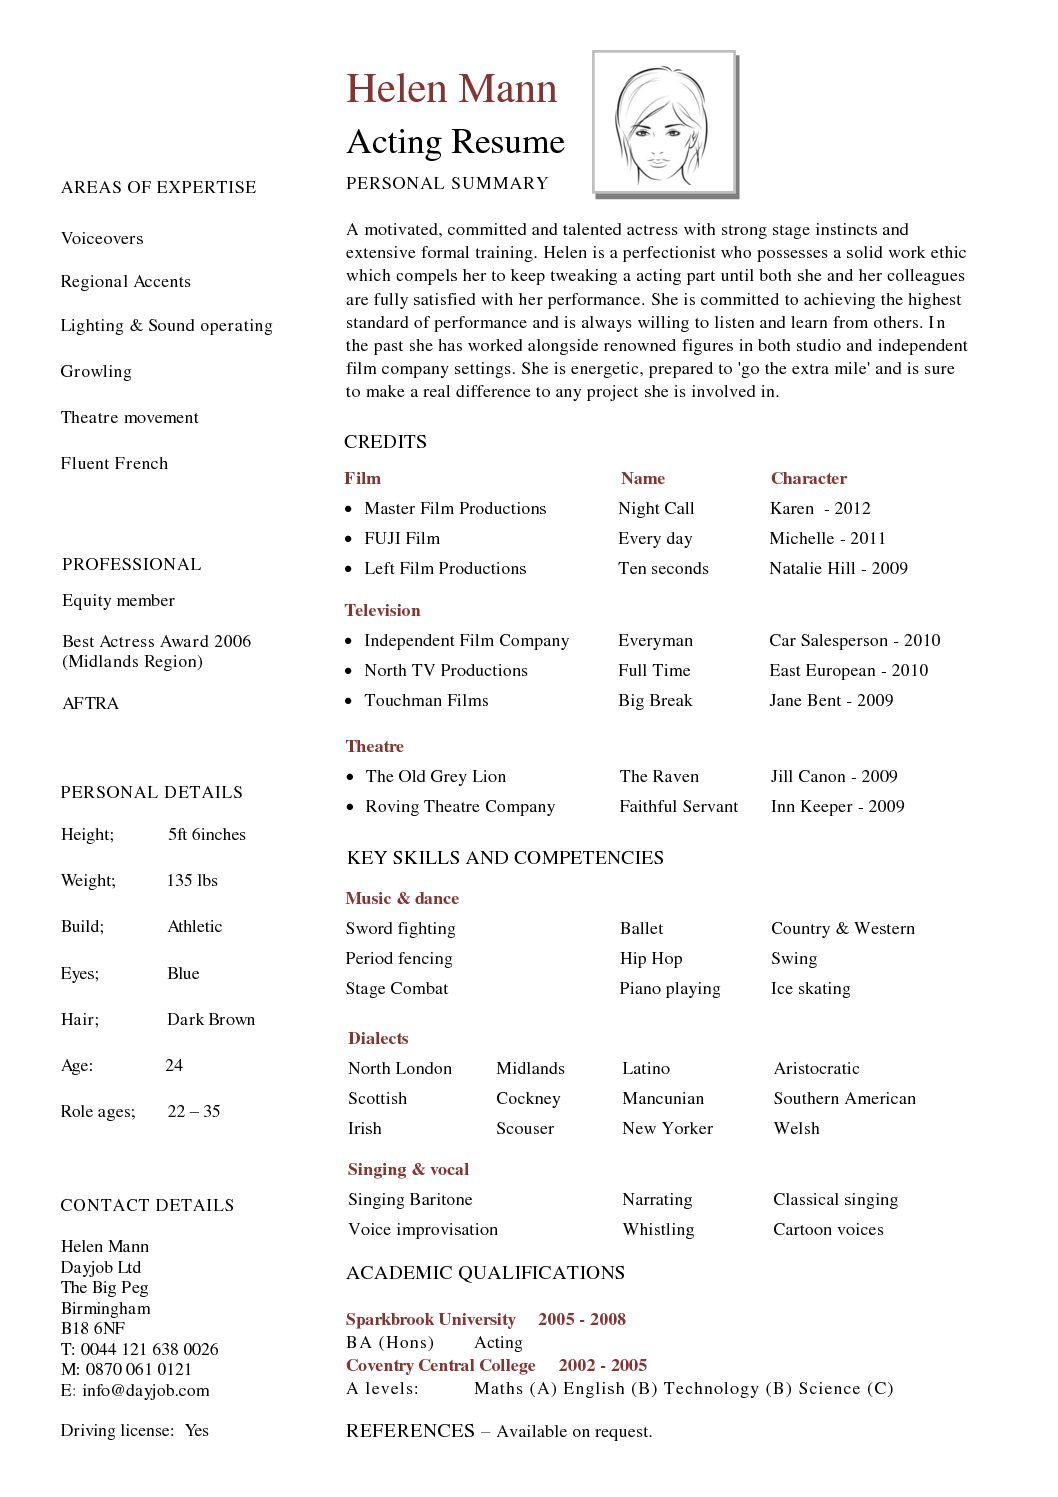 how to make a professional acting resume